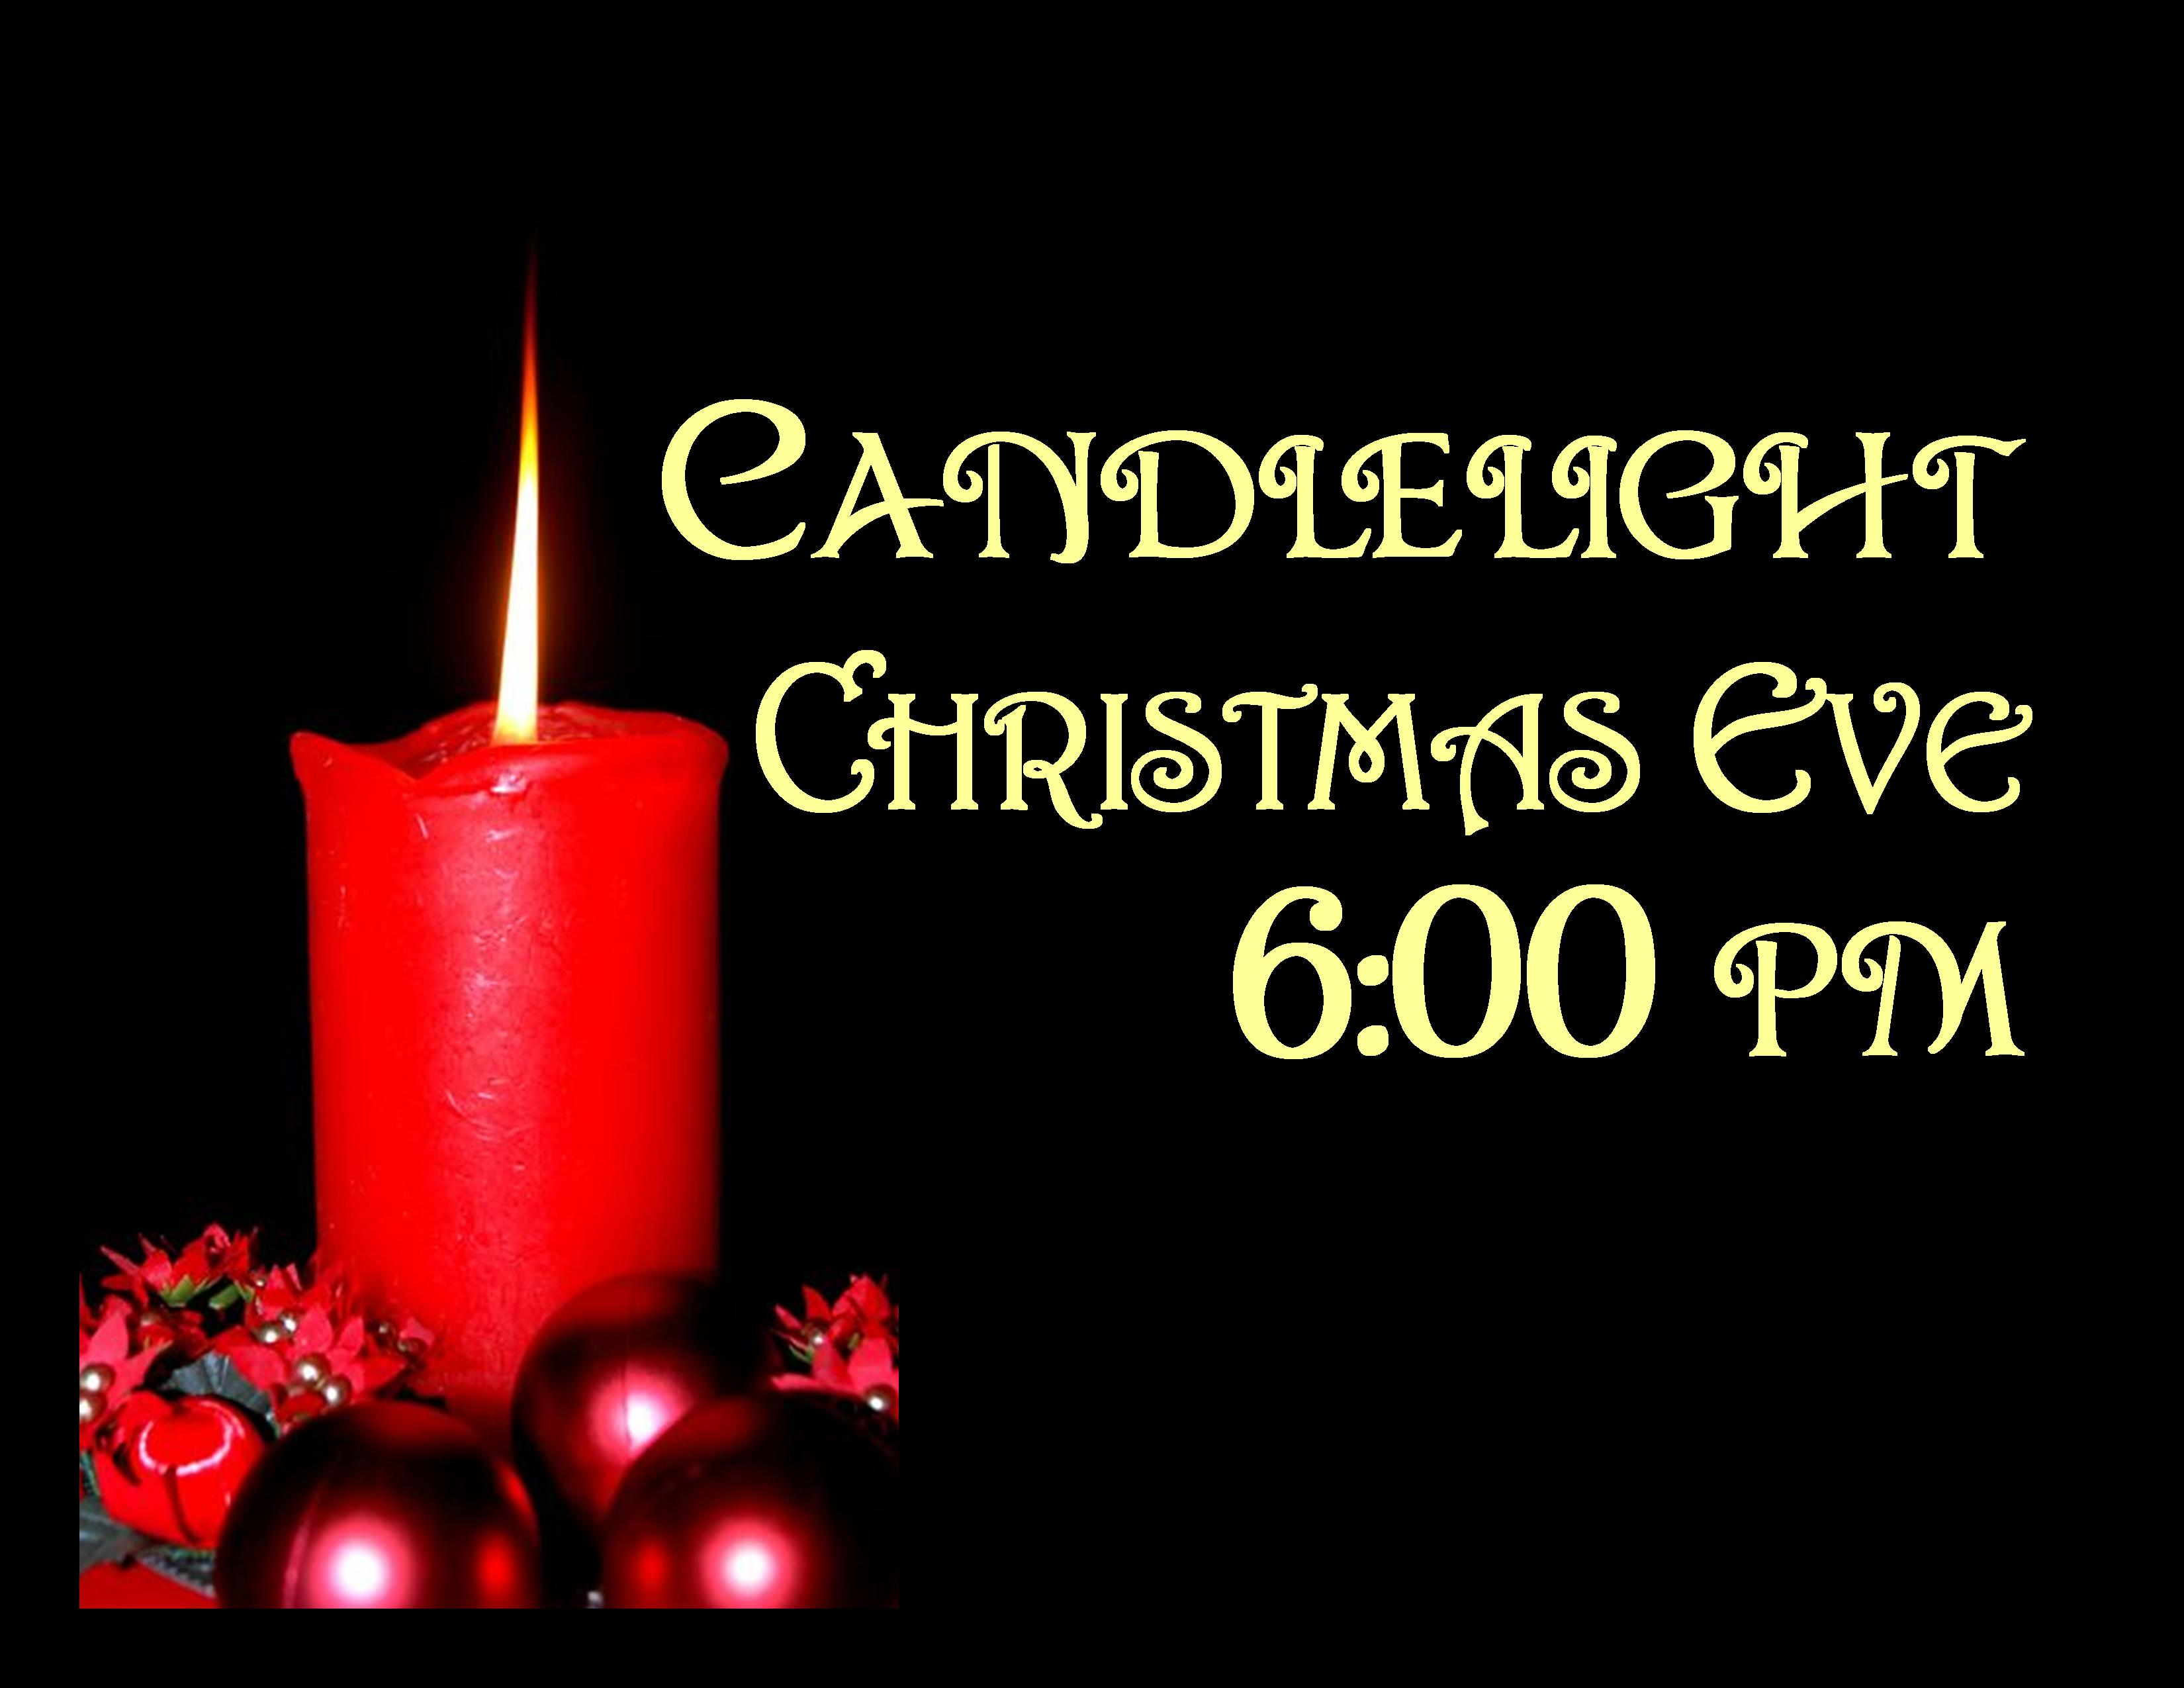 Christmas Eve Candlelight Service Clipart Christmas Eve Service